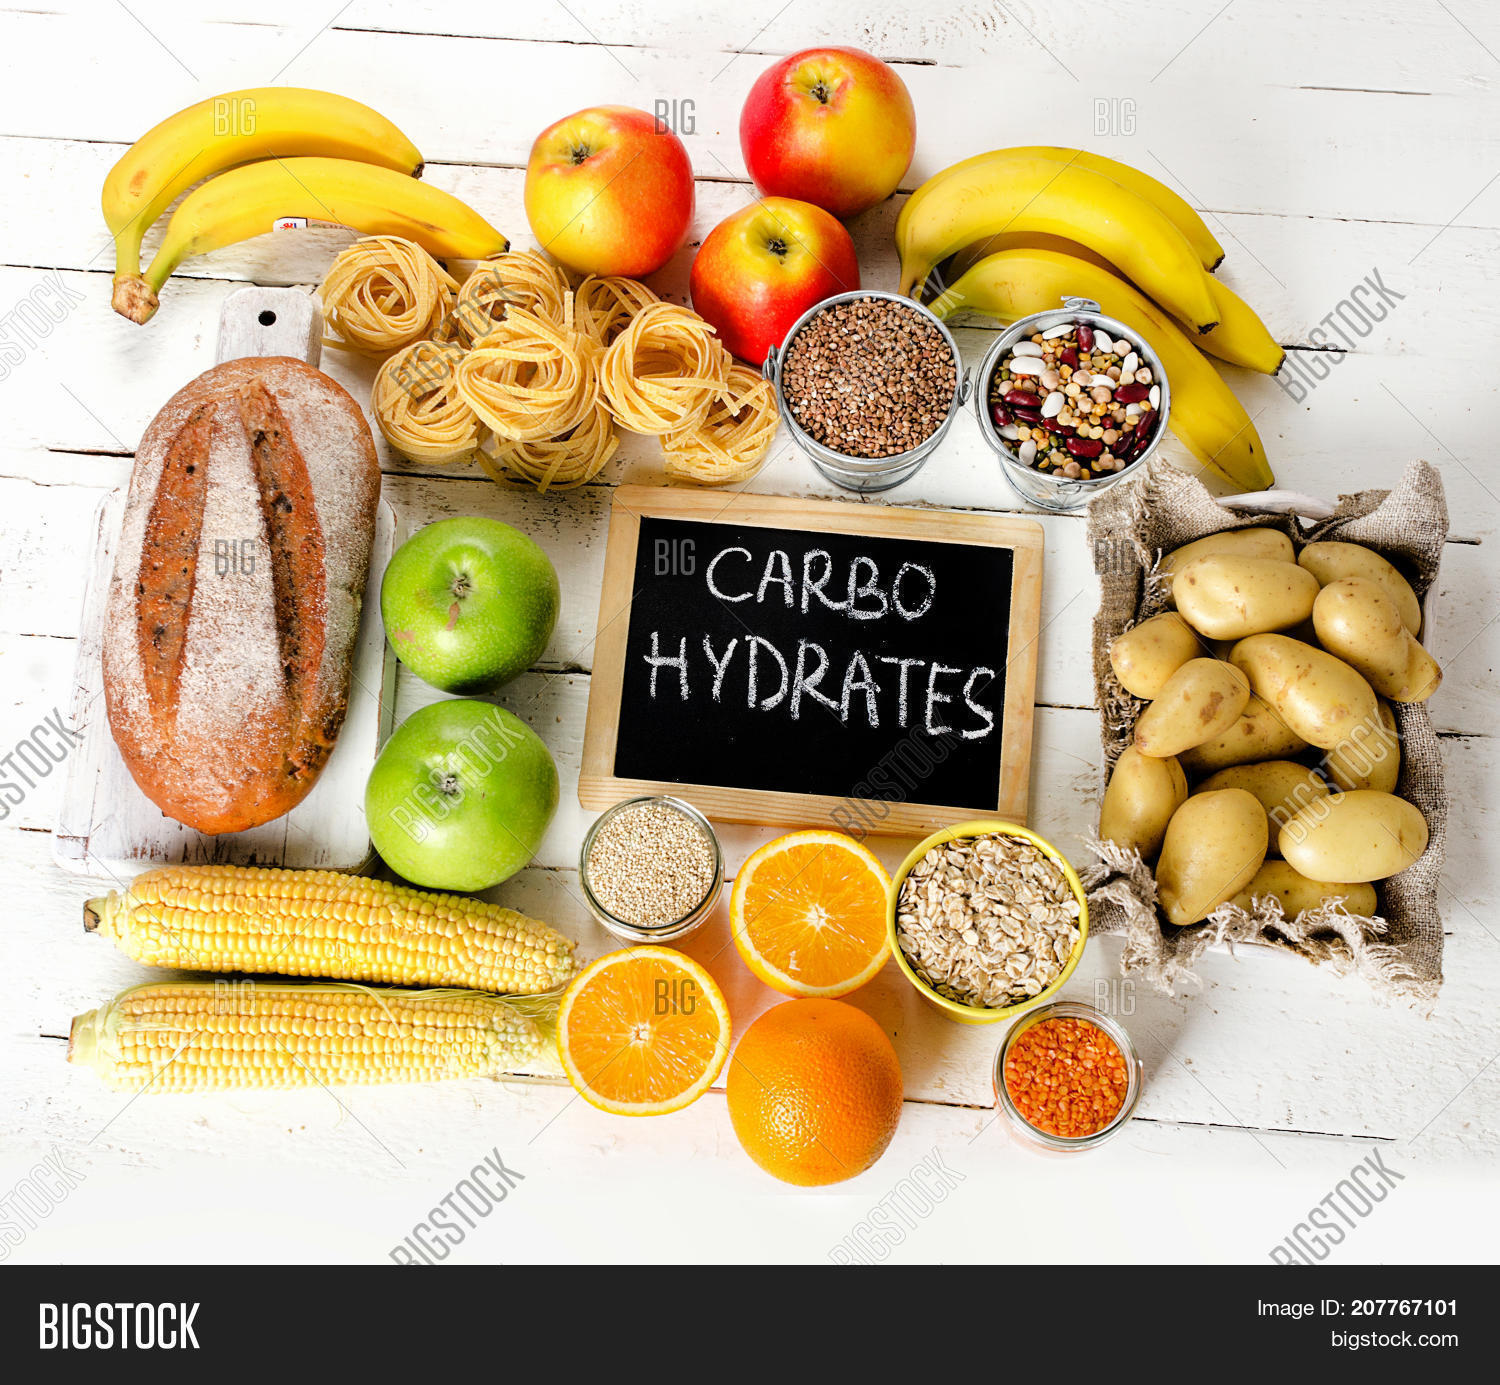 Foods with high carbohydrates